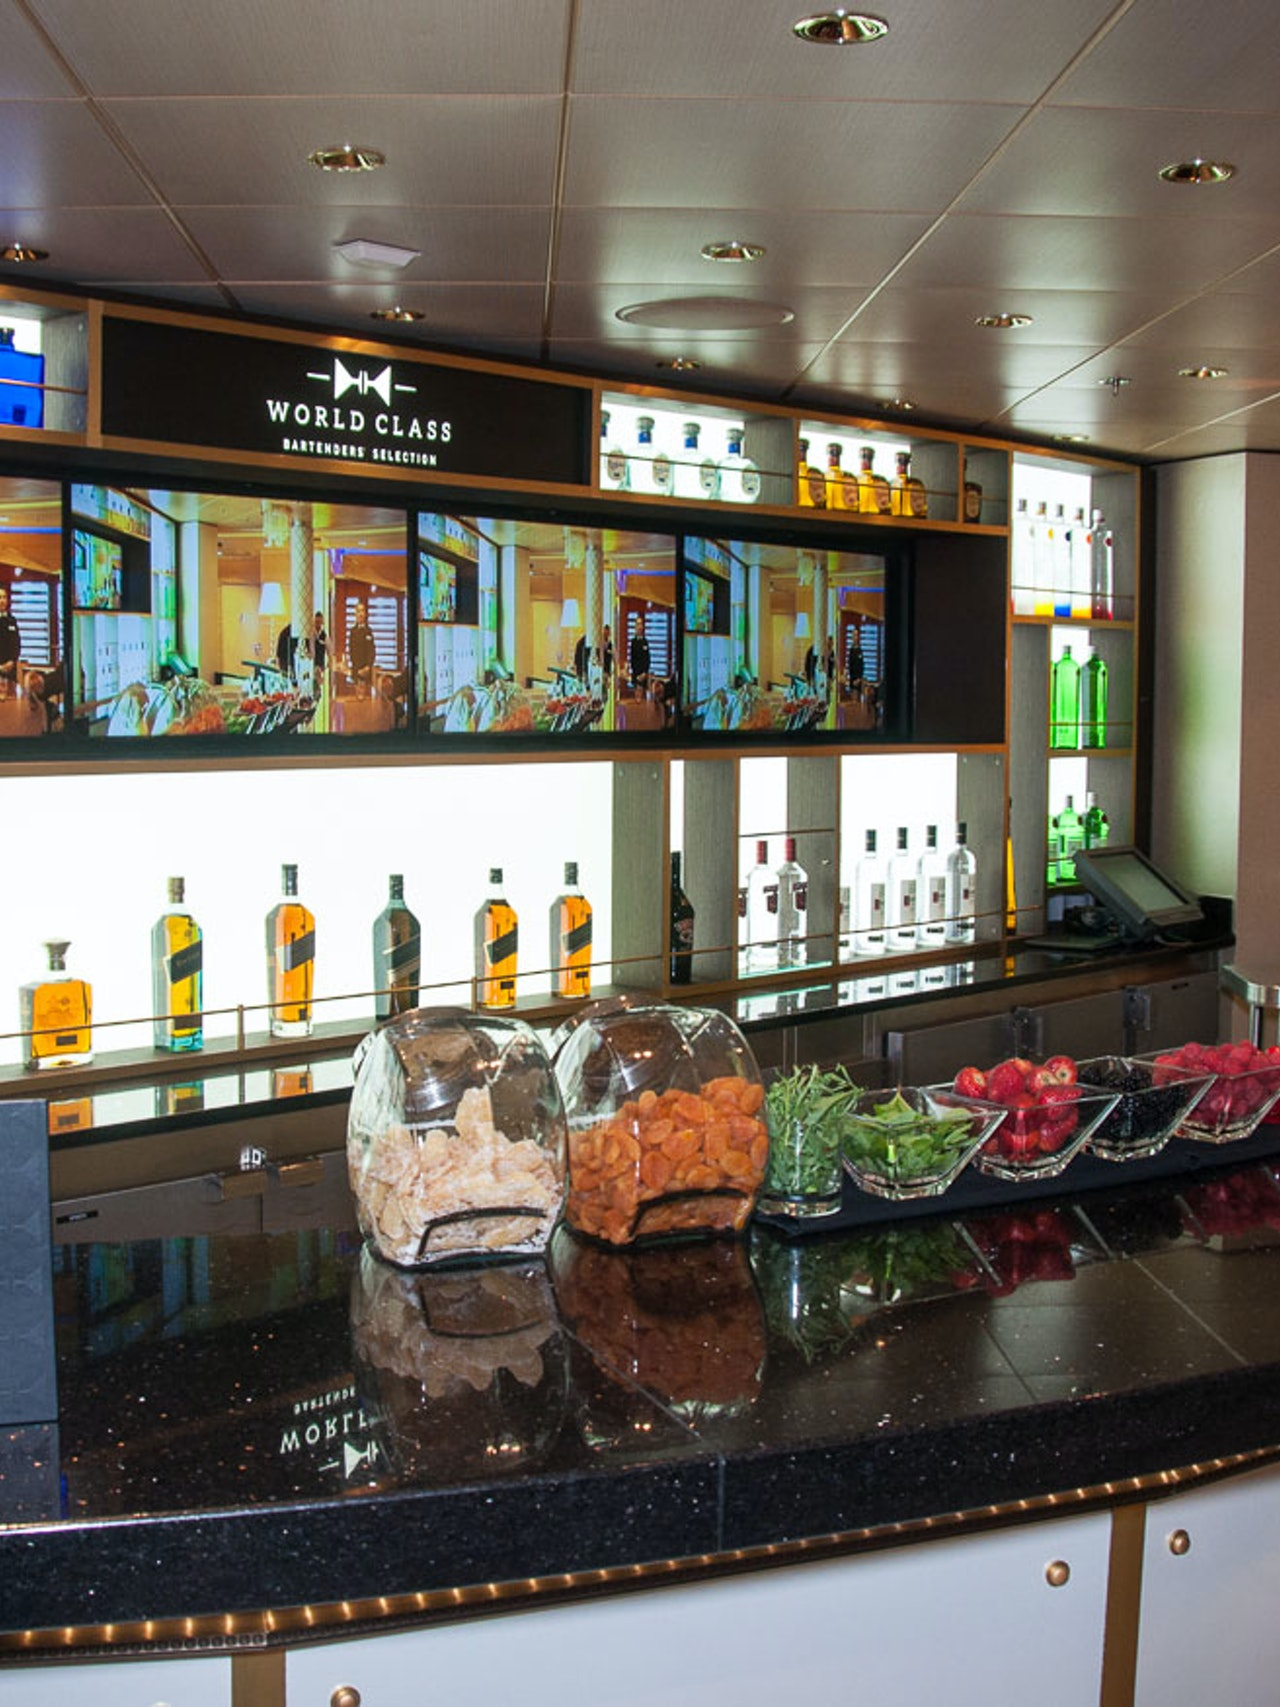 WORLDCLASS BAR - CELEBRITY ECLIPSE